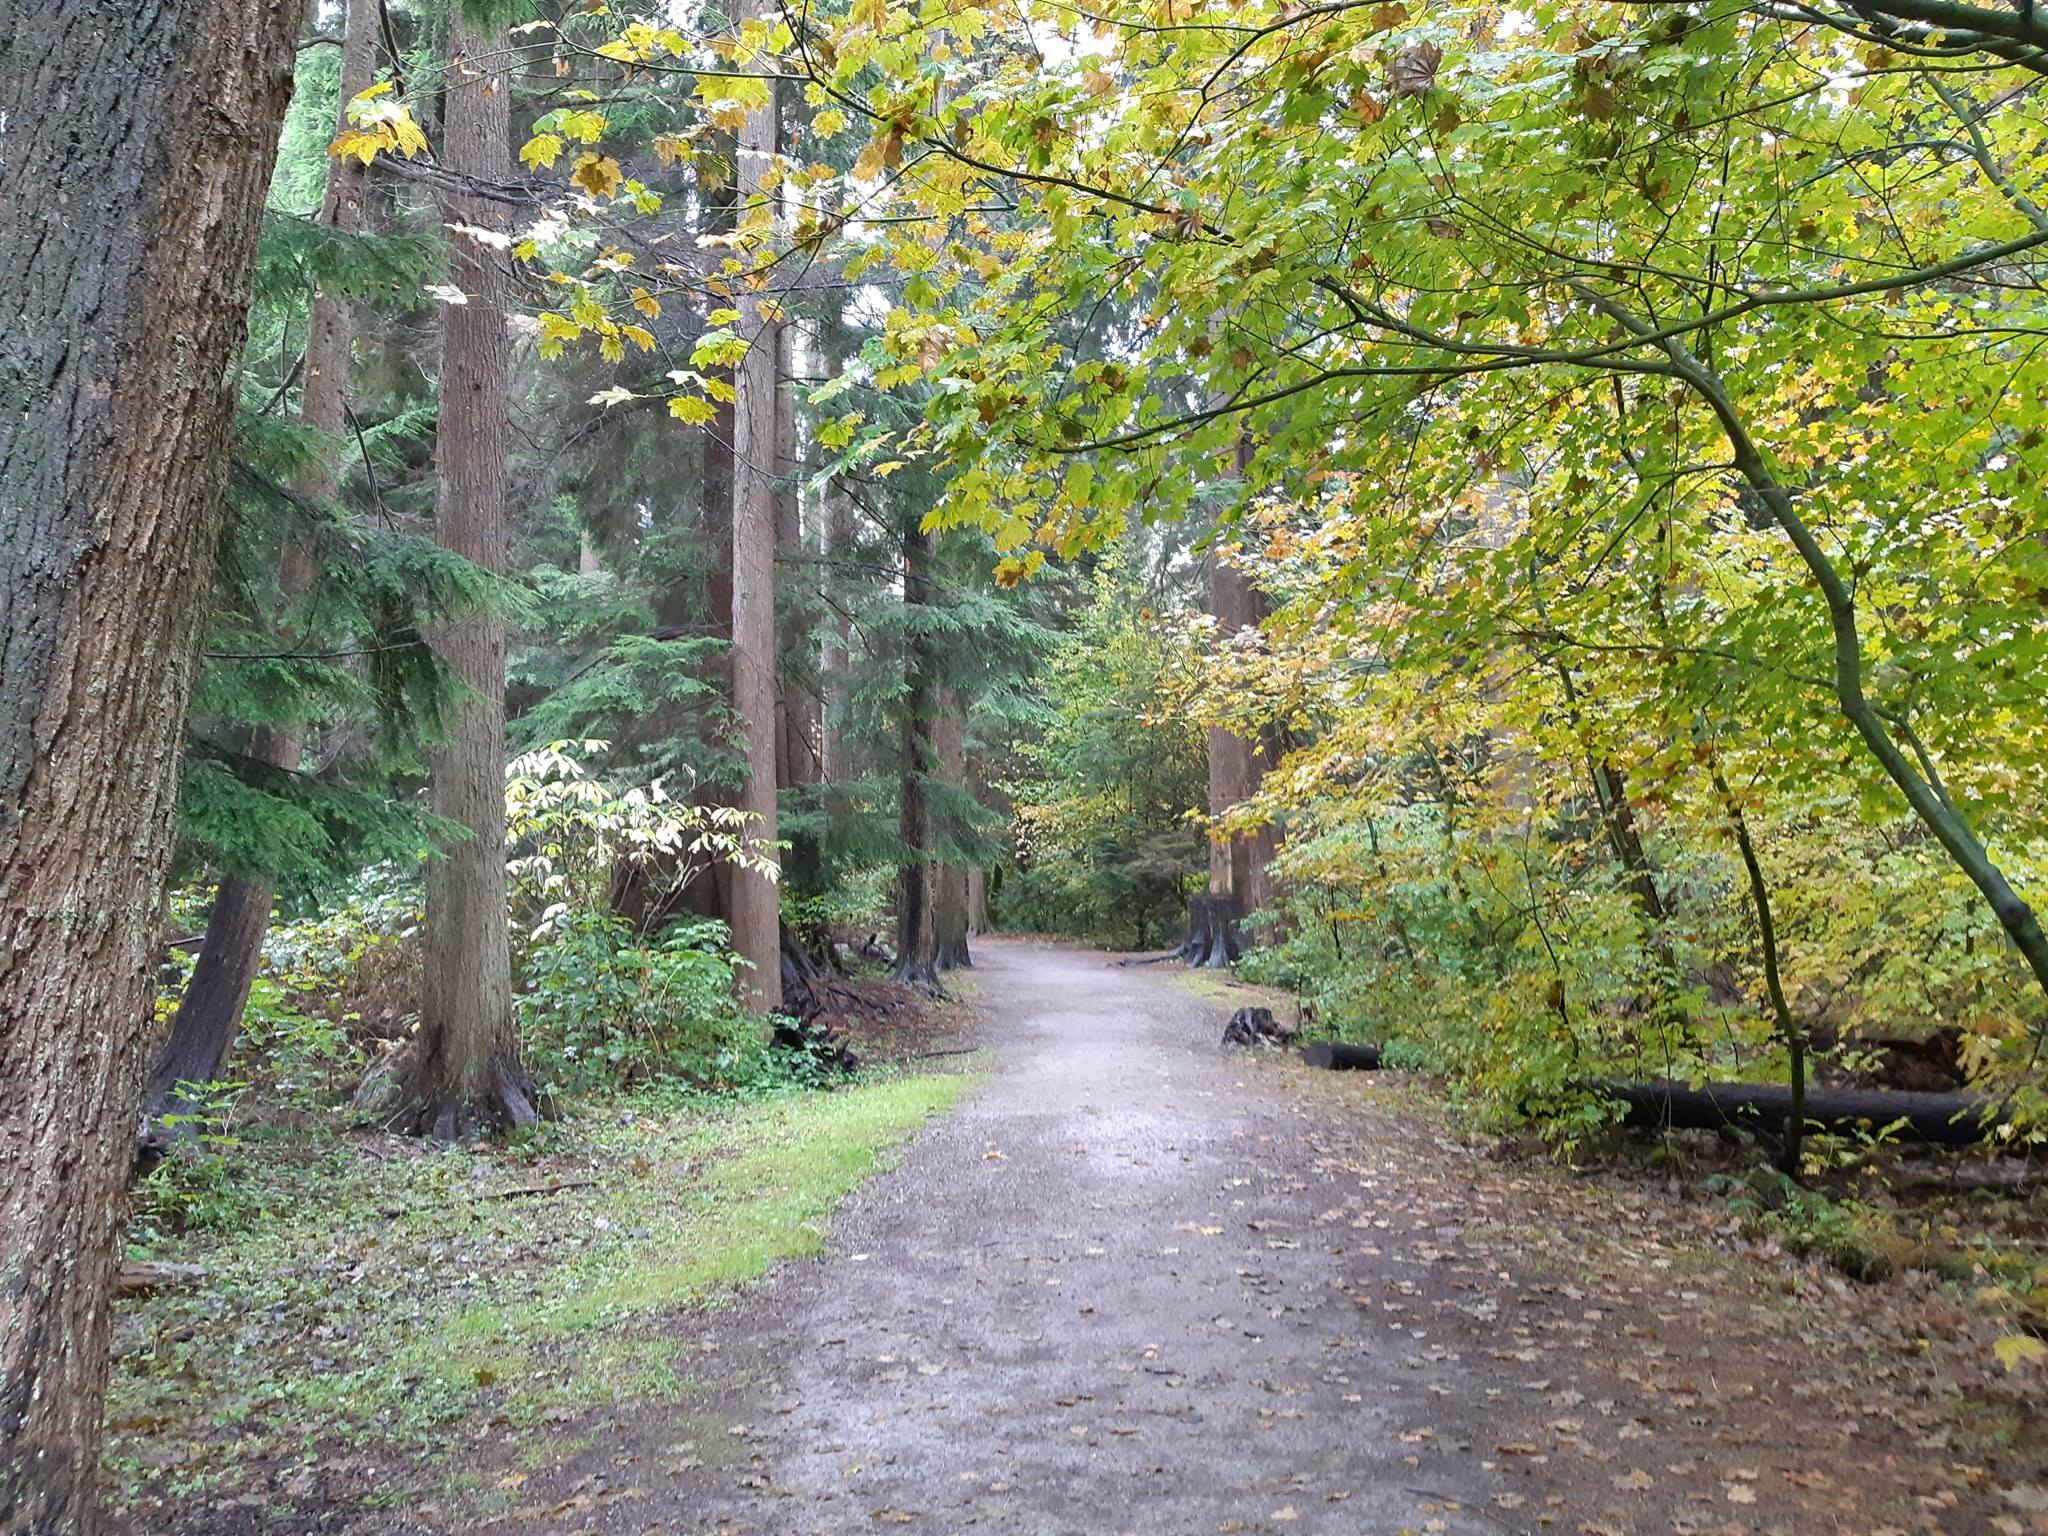 It's a beautiful time of year to explore Hoy Trail.